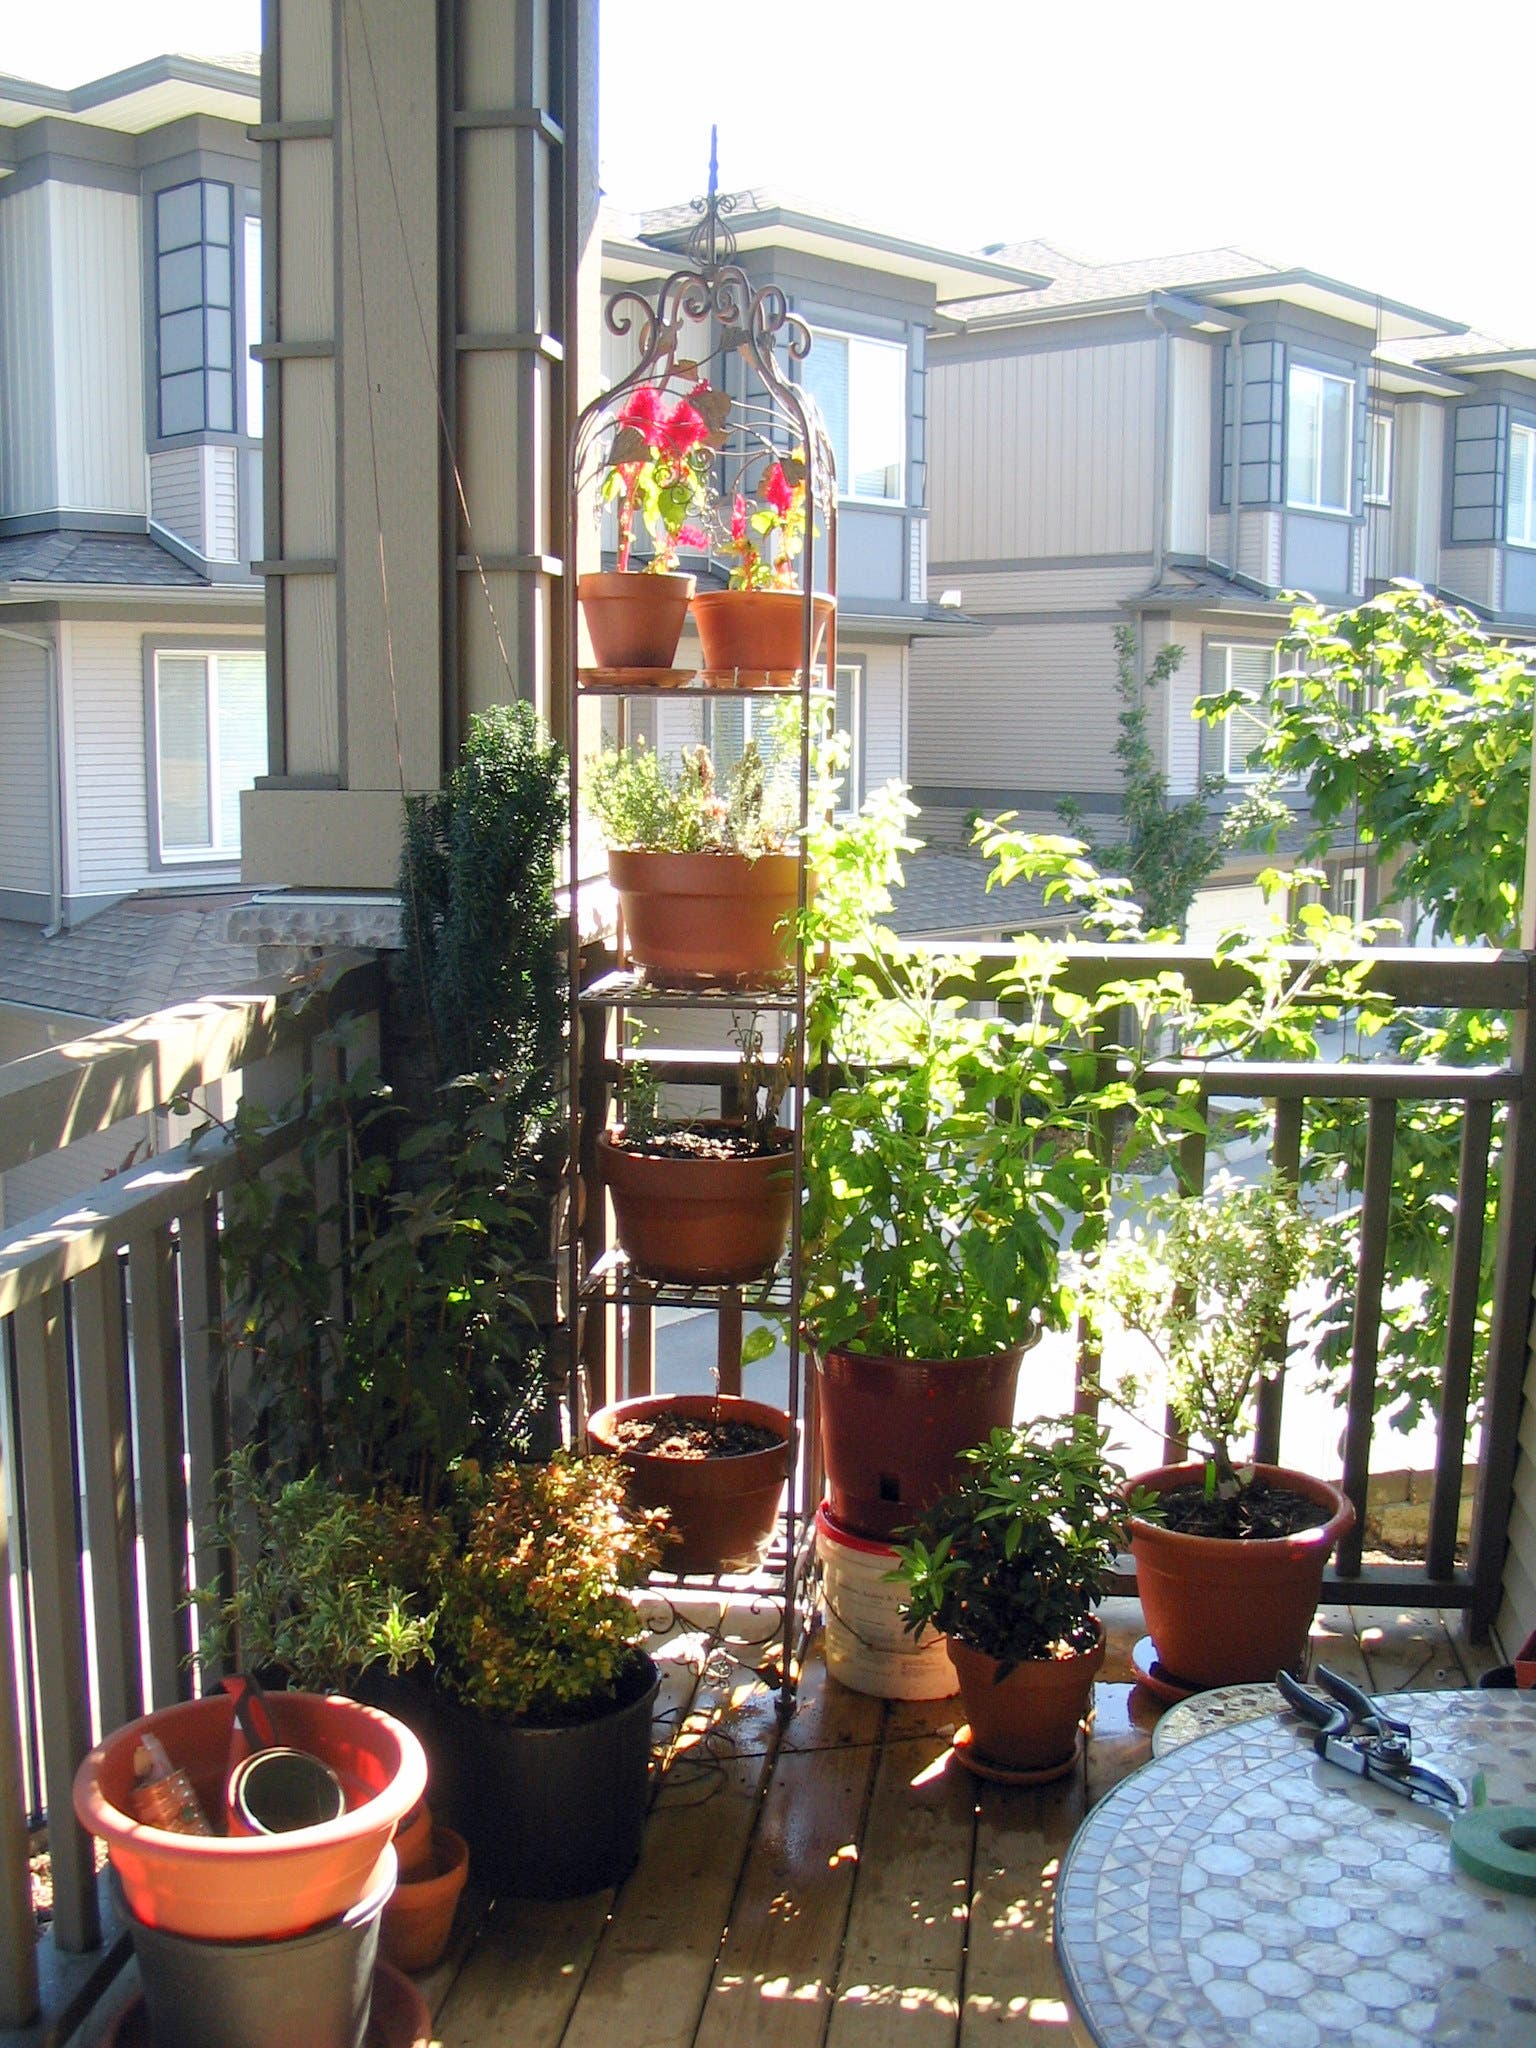 container vegetable gardening ideas in tiny spaces top 10 tips - Small Patio Vegetable Garden Ideas